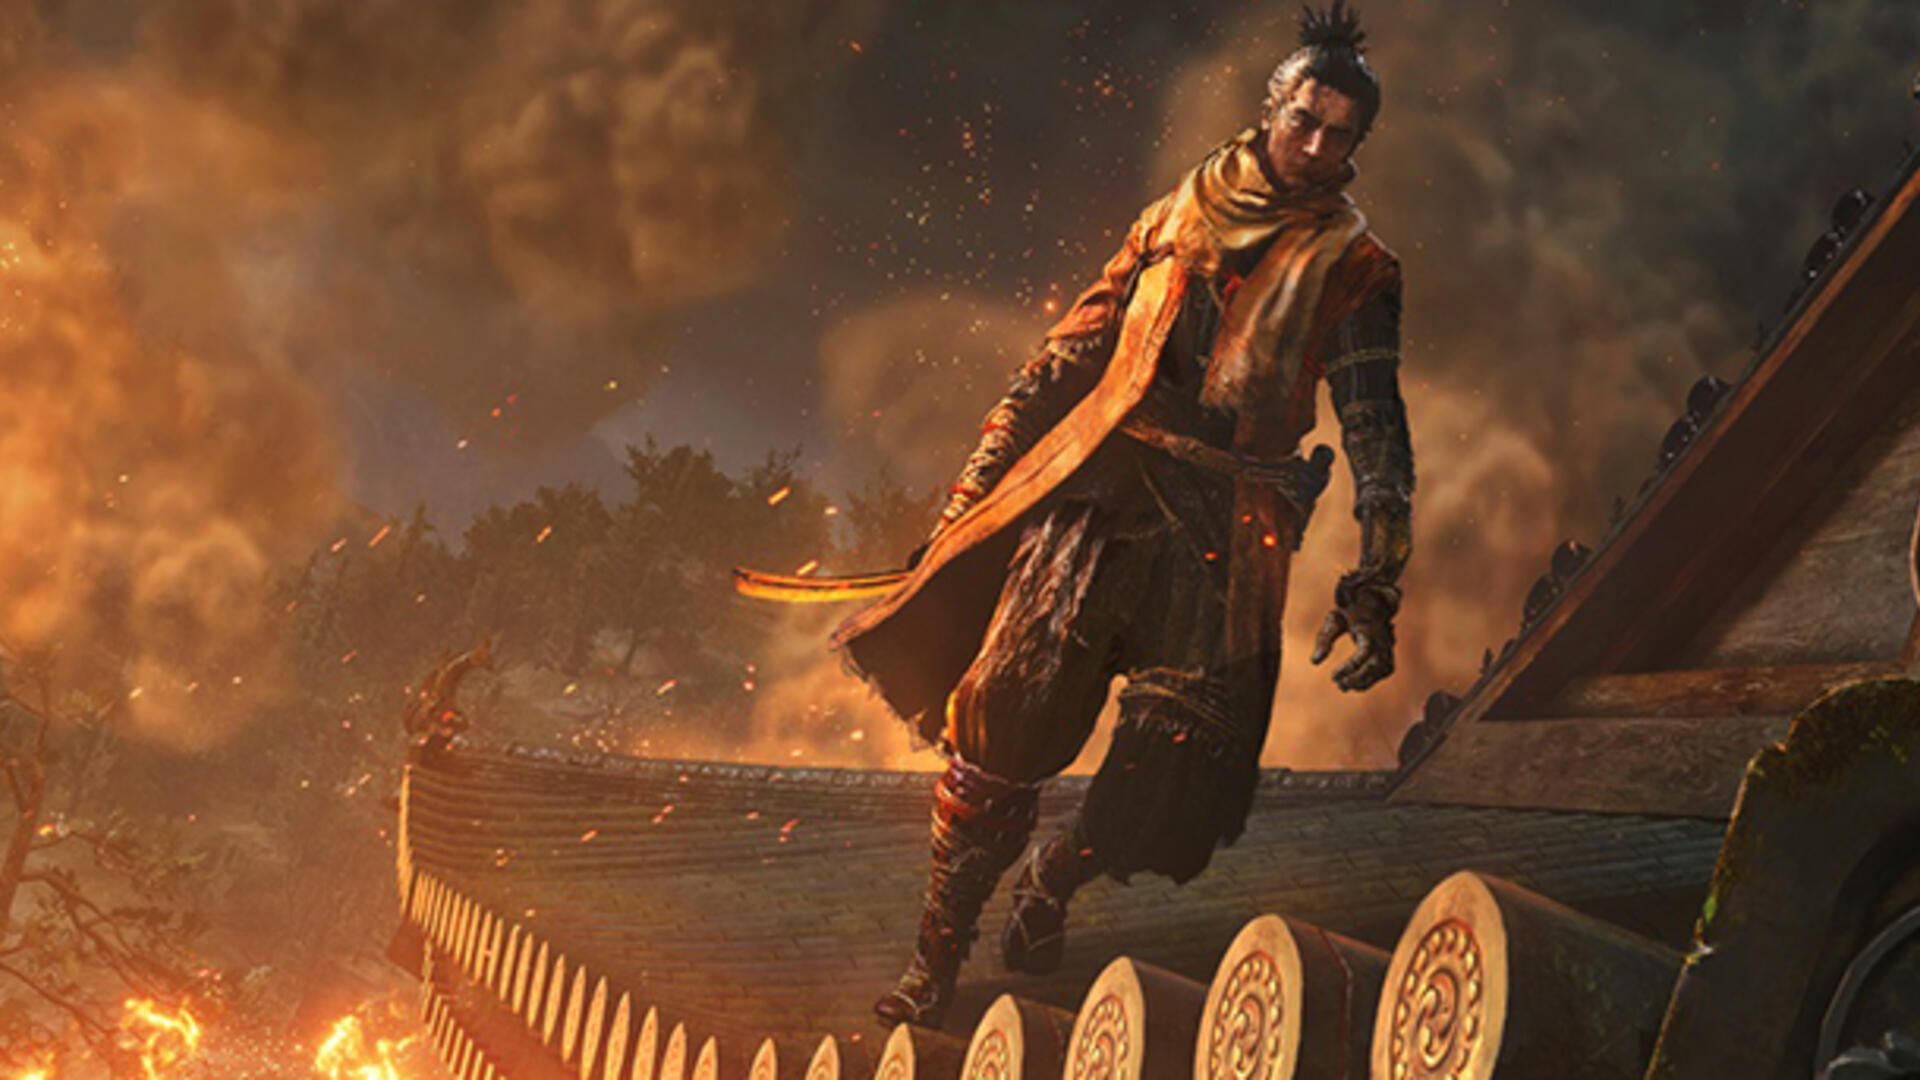 Dark Souls Director Miyazaki on How Sekiro: Shadows Die Twice is a New Direction for FromSoftware